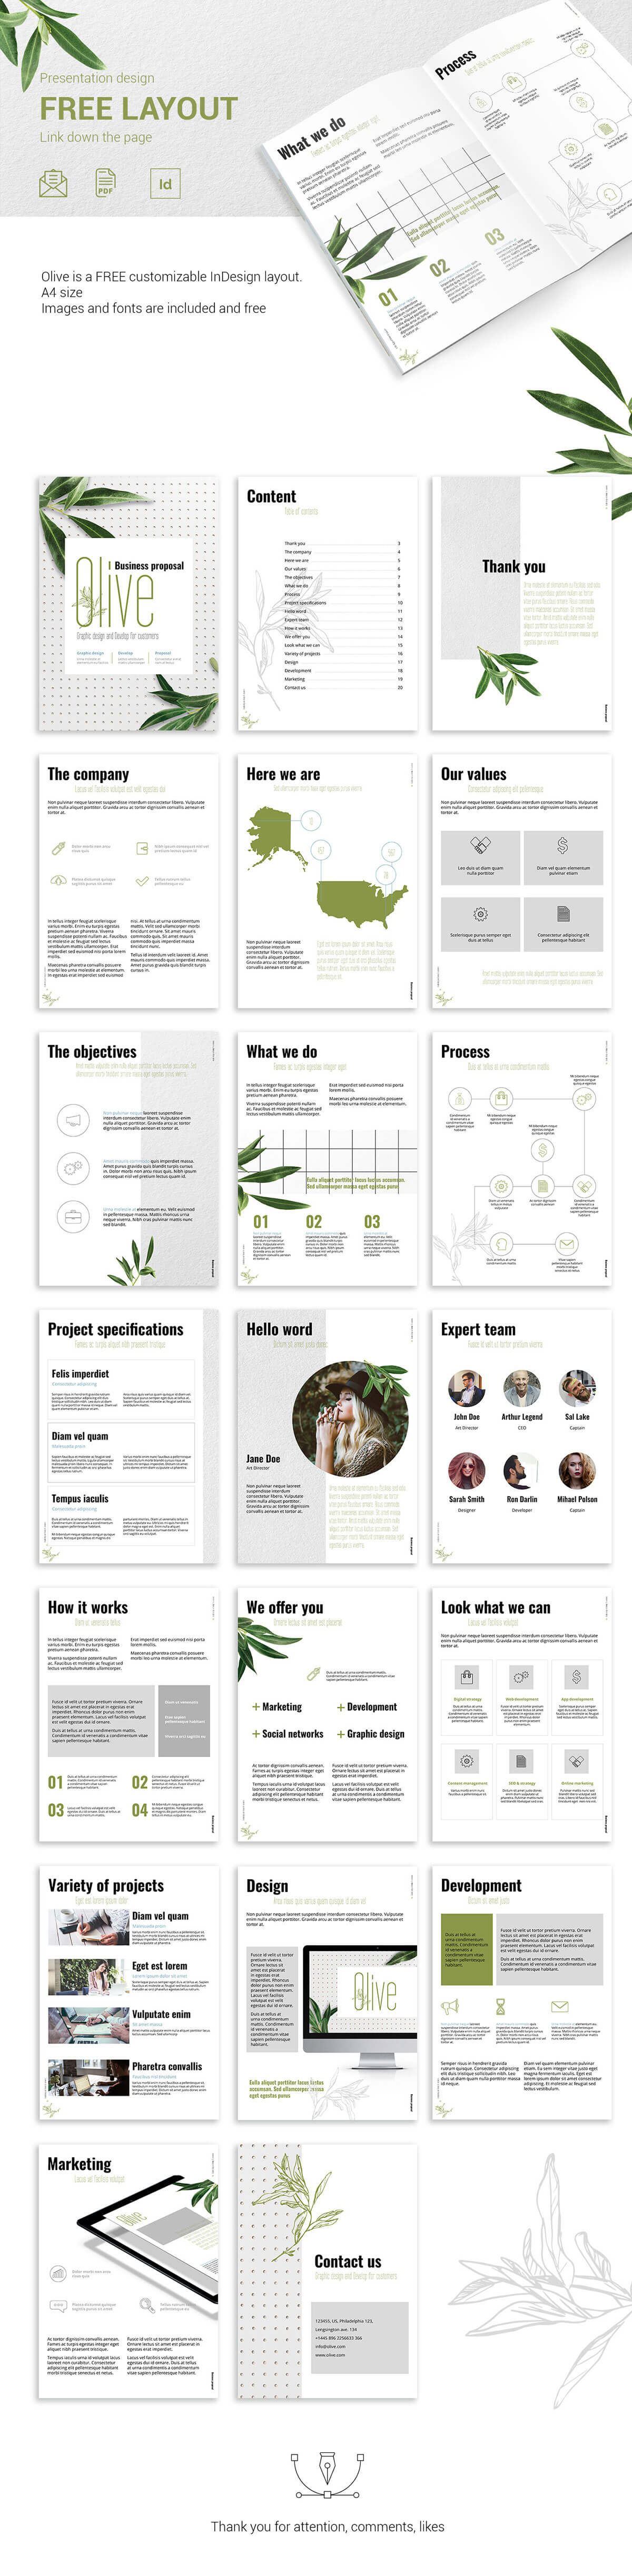 Free Olive Presentation Design Layout